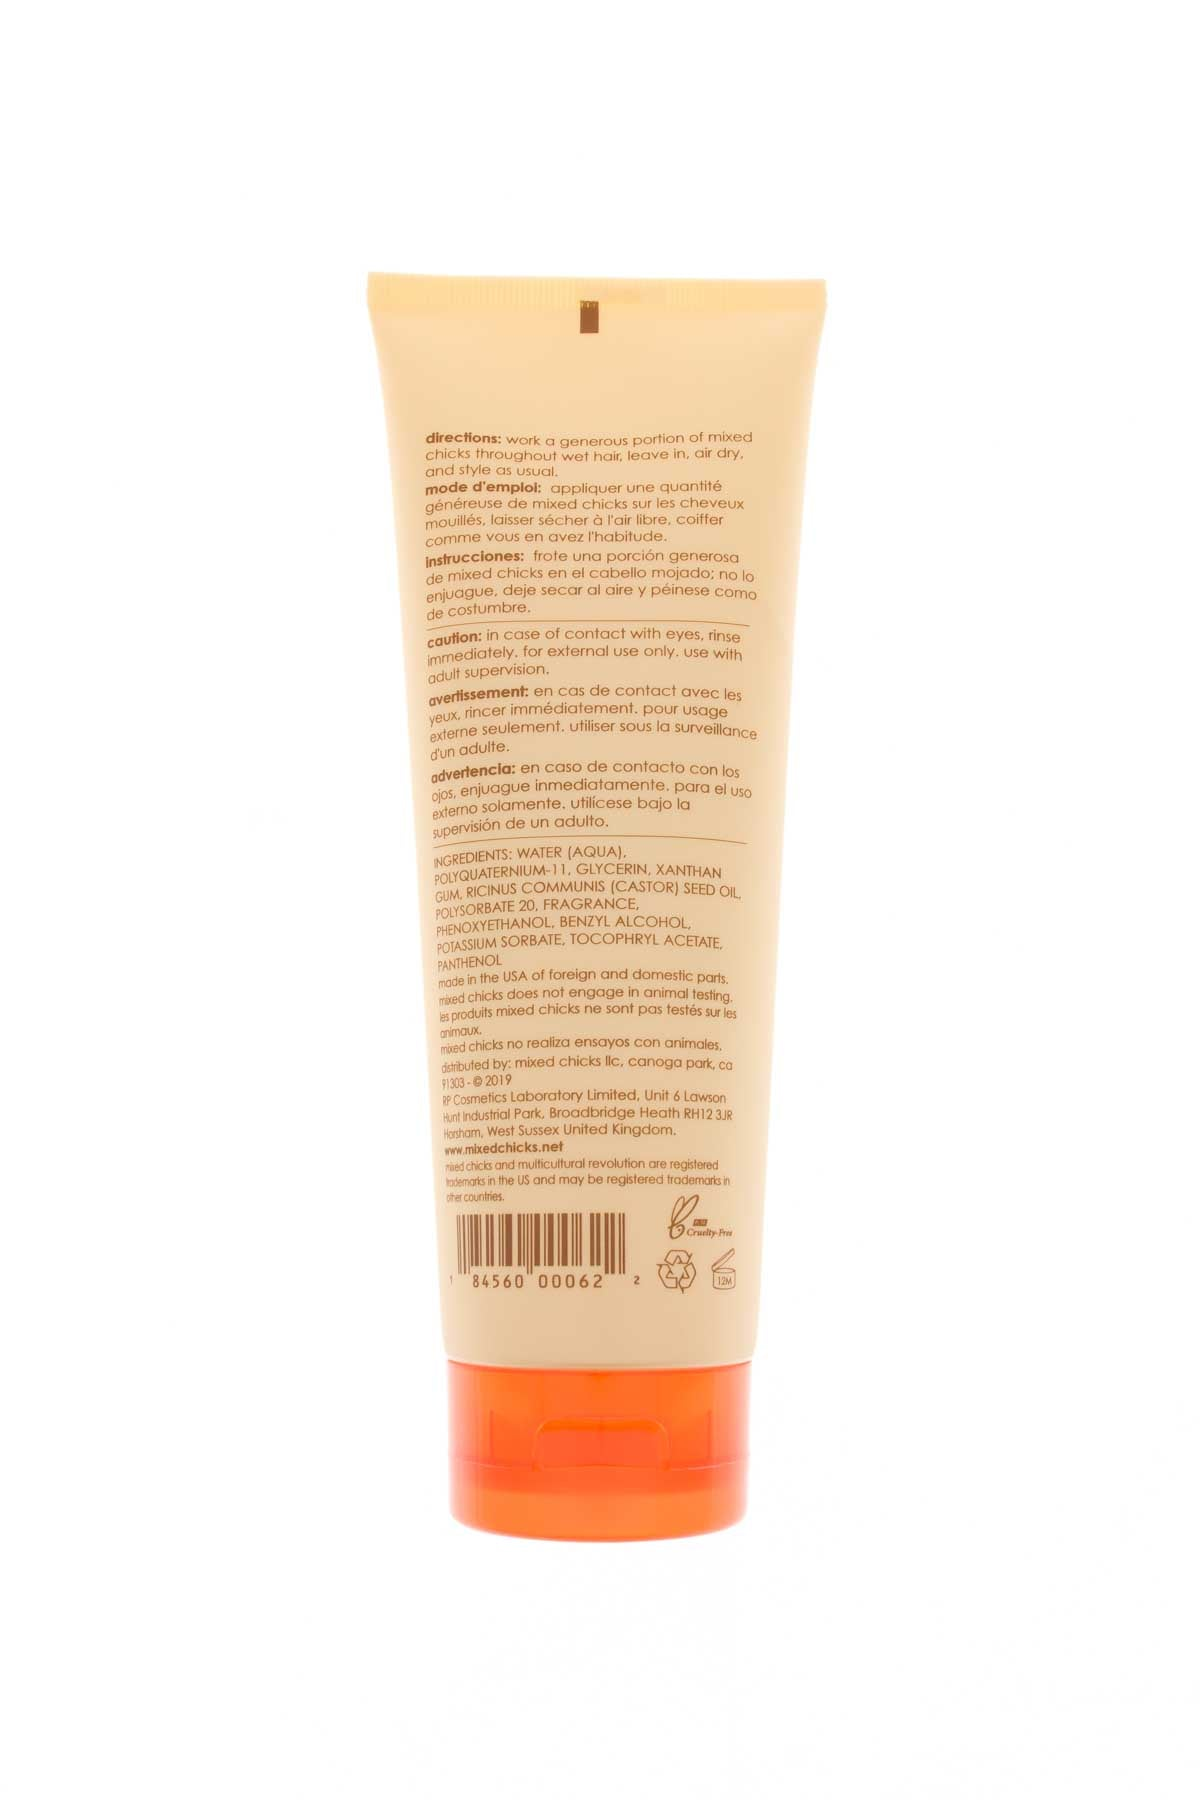 Curly hair cream - Mixed Chicks Curl Sculptor